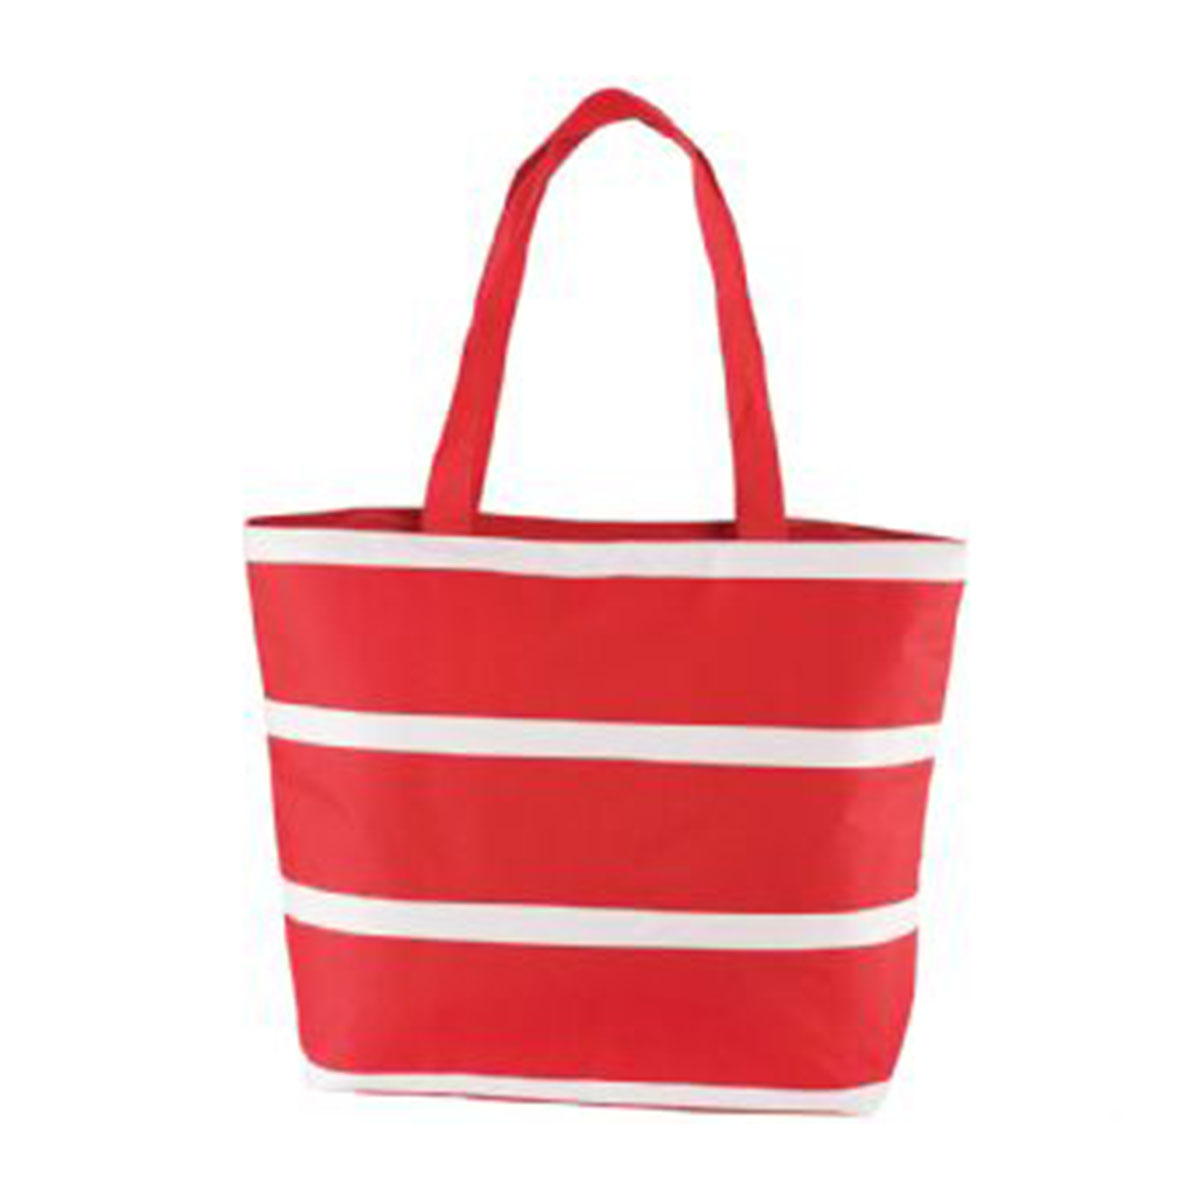 Insulated Cooler Bag-Red with white stripes.